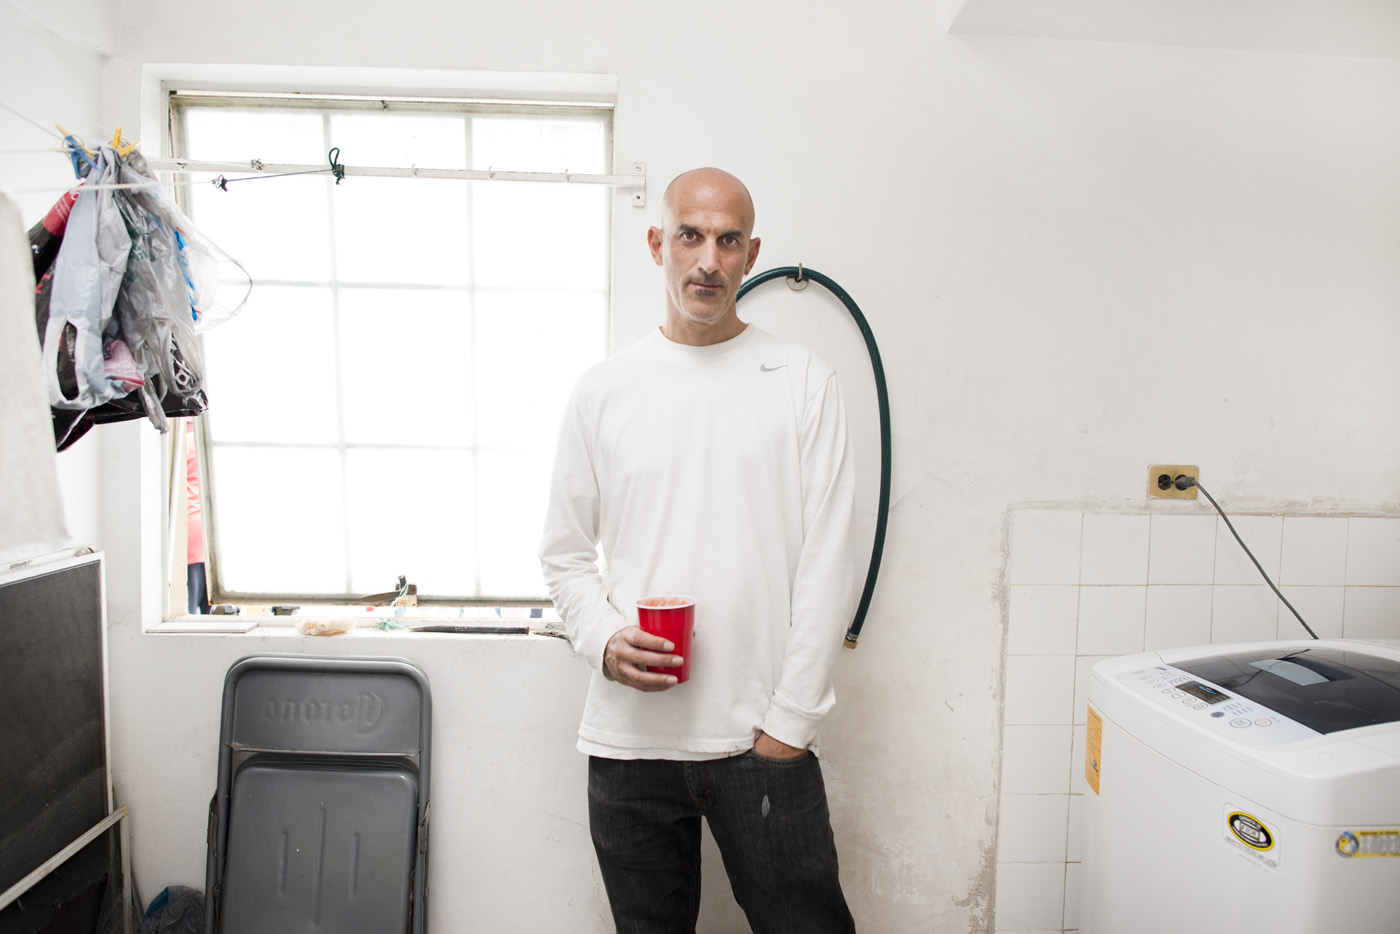 Writer/Photographer Kurt Hollander in his laundry room at his home in Condesa, Mexico City